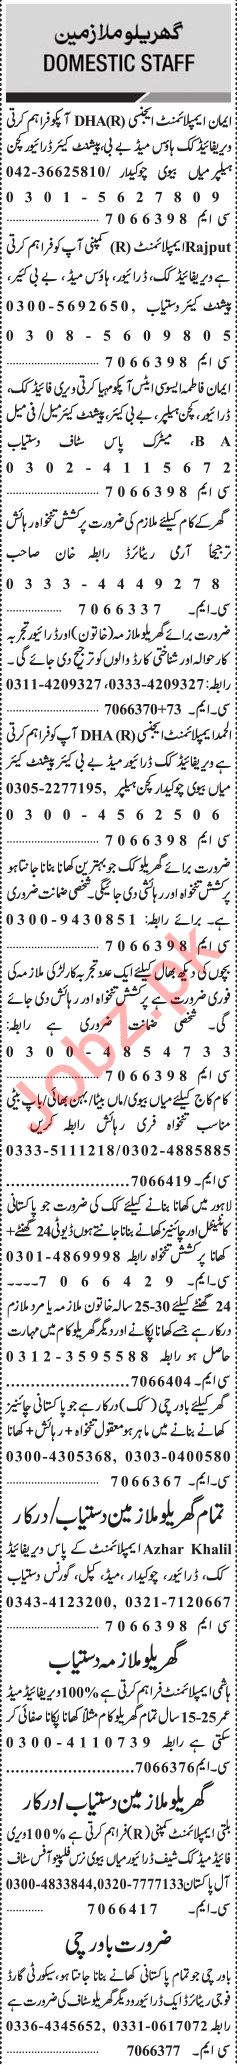 Jang Sunday Classified Ads 26th May 2019 for House Staff